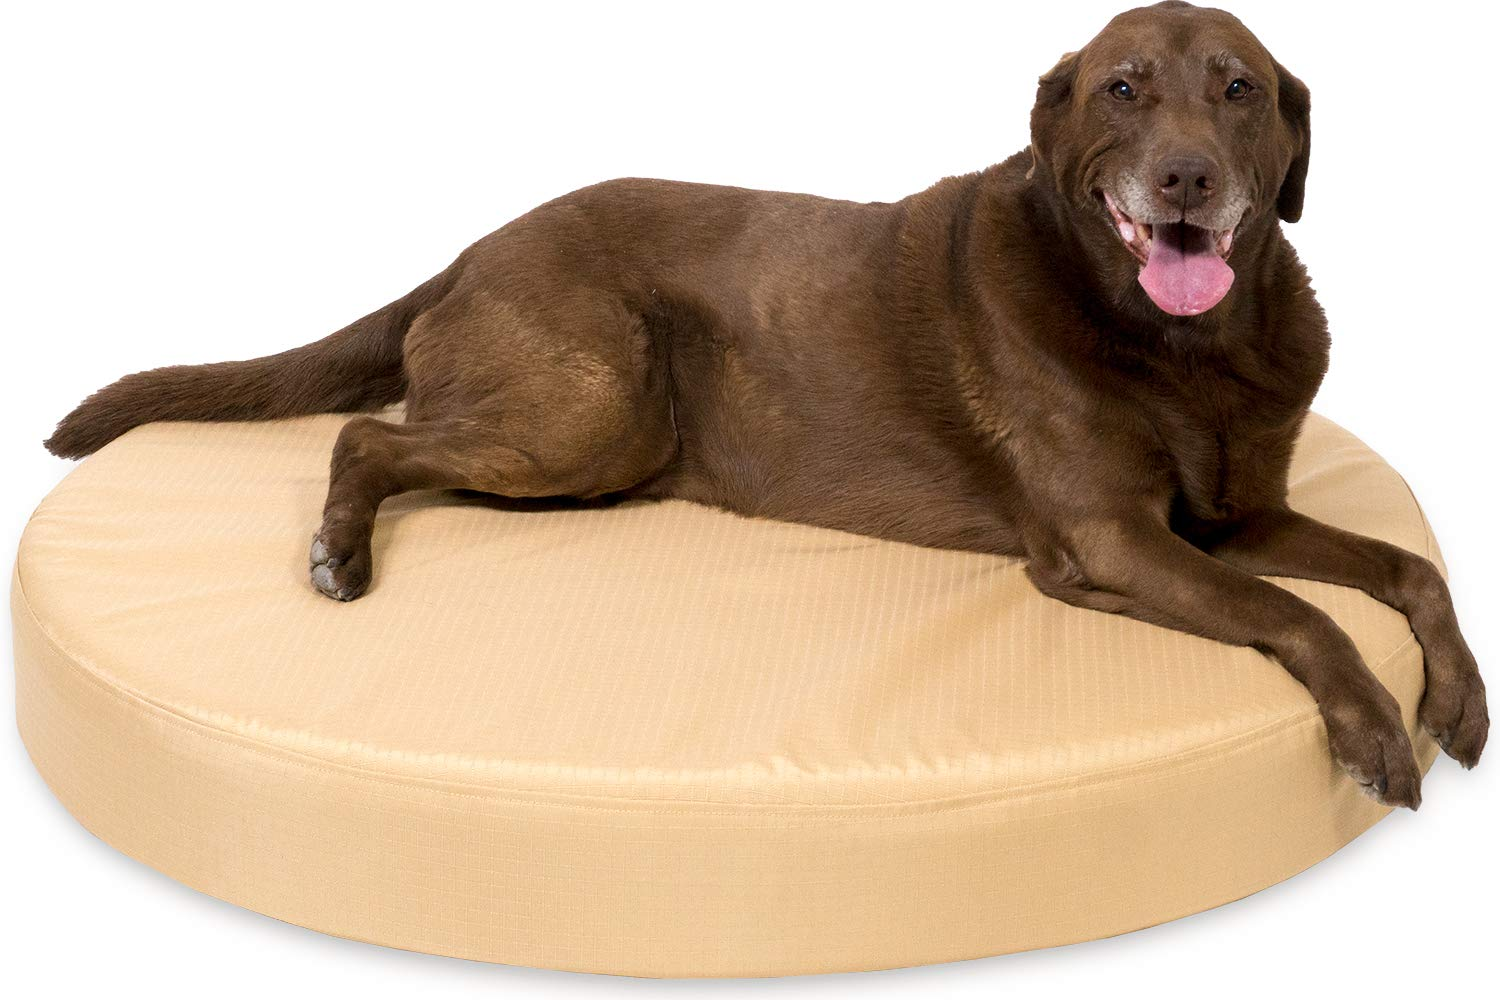 K9 Ballistics Round Orthopedic Dog Bed Nearly Indestructible Chew Resistant, Small Medium Large Tough Nesting Pillow for Chewing Puppy, Joint Support Foam